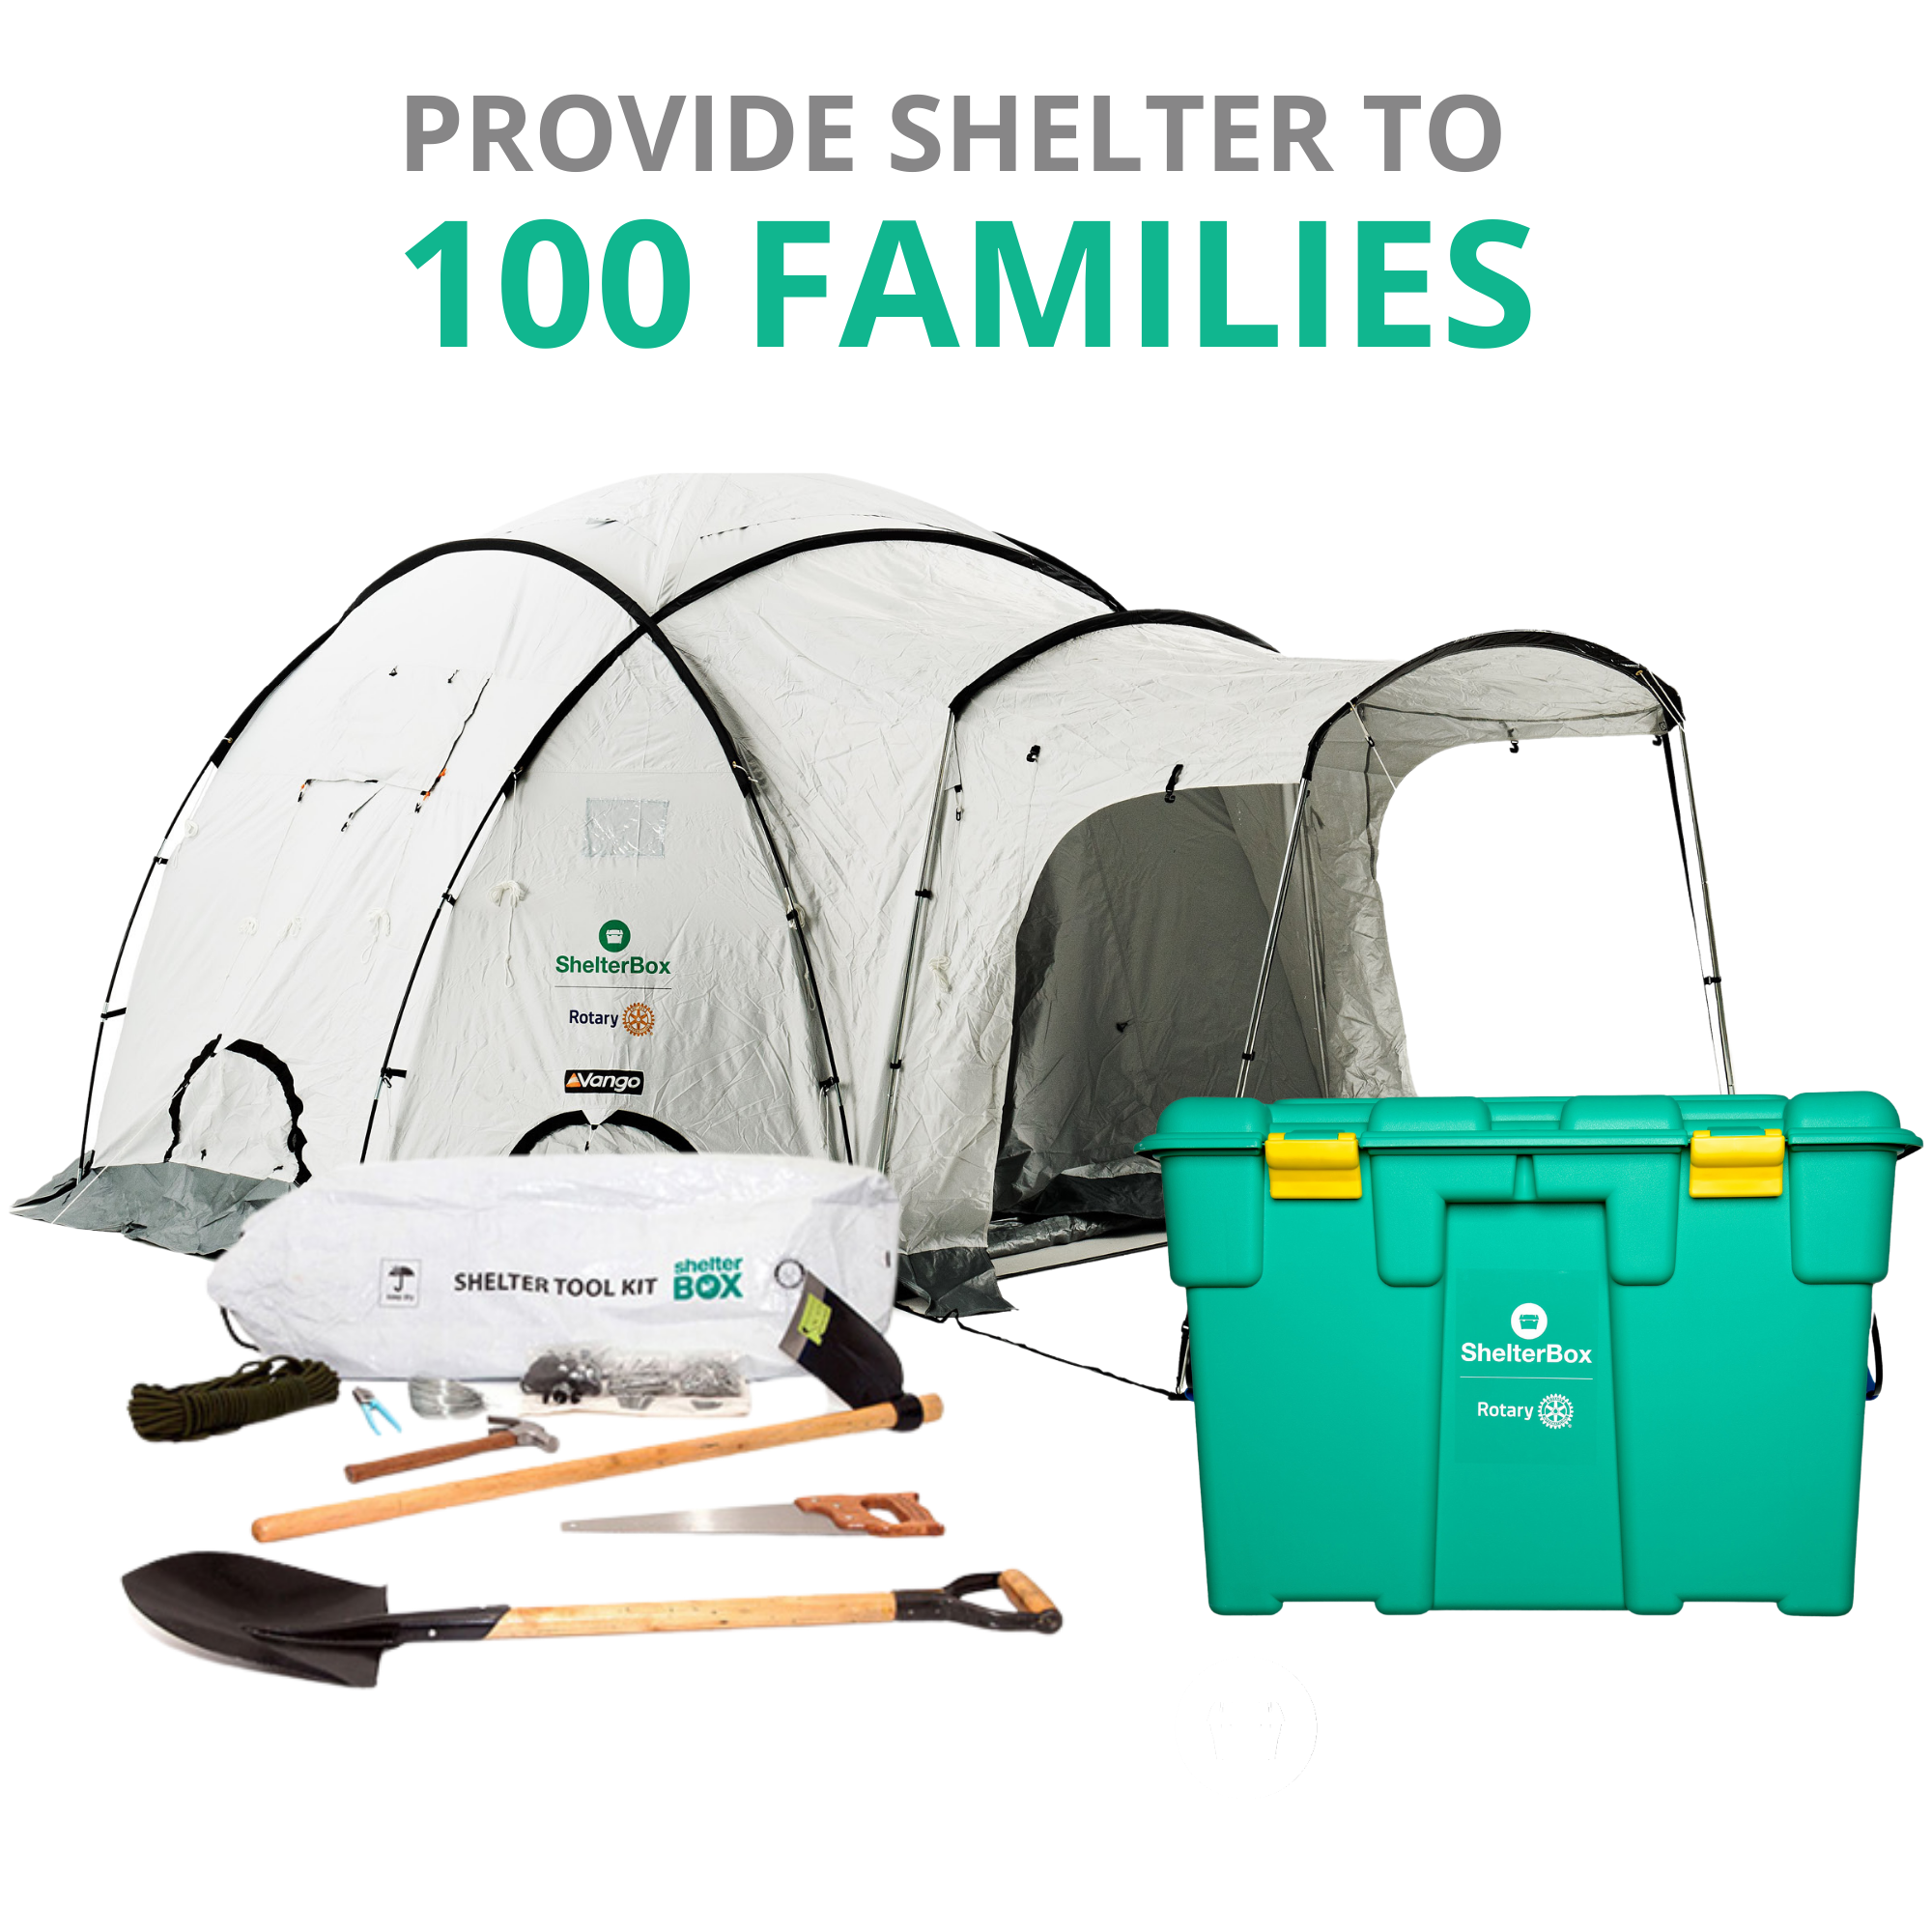 Provide Shelter to 100 families